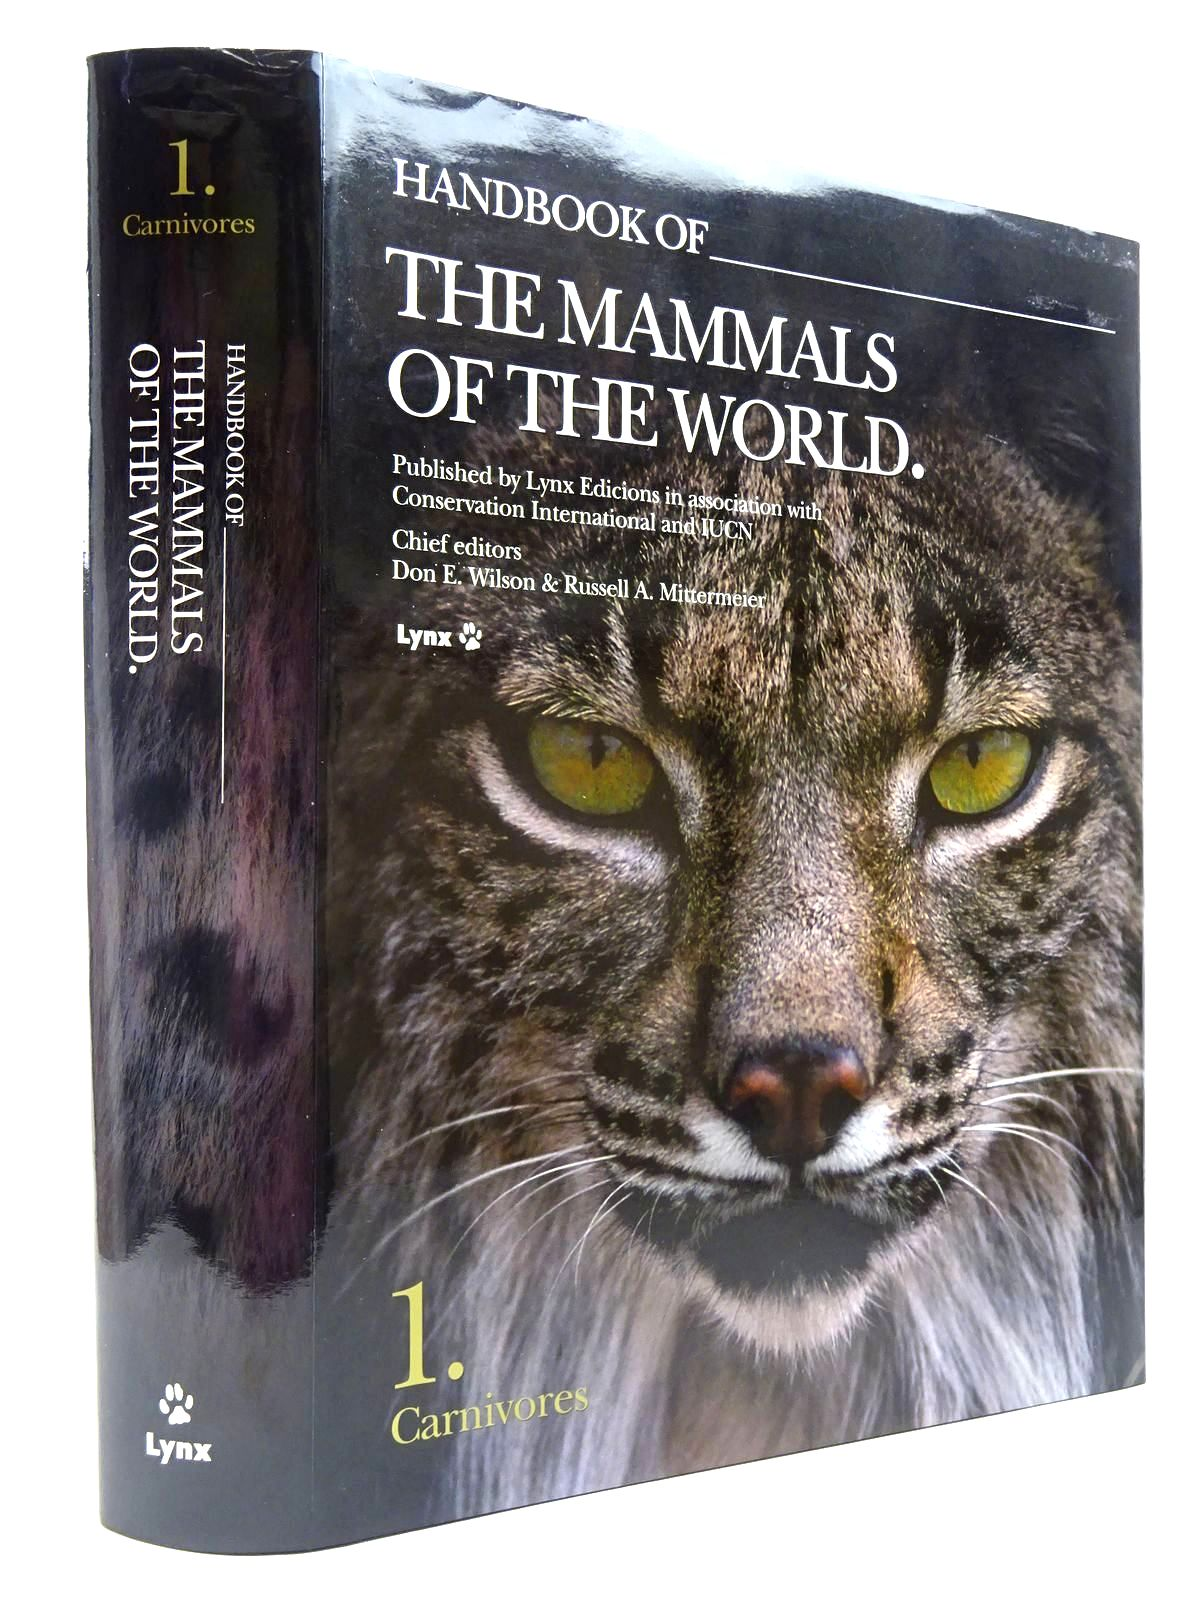 Photo of HANDBOOK OF THE MAMMALS OF THE WORLD 1. CARNIVORES